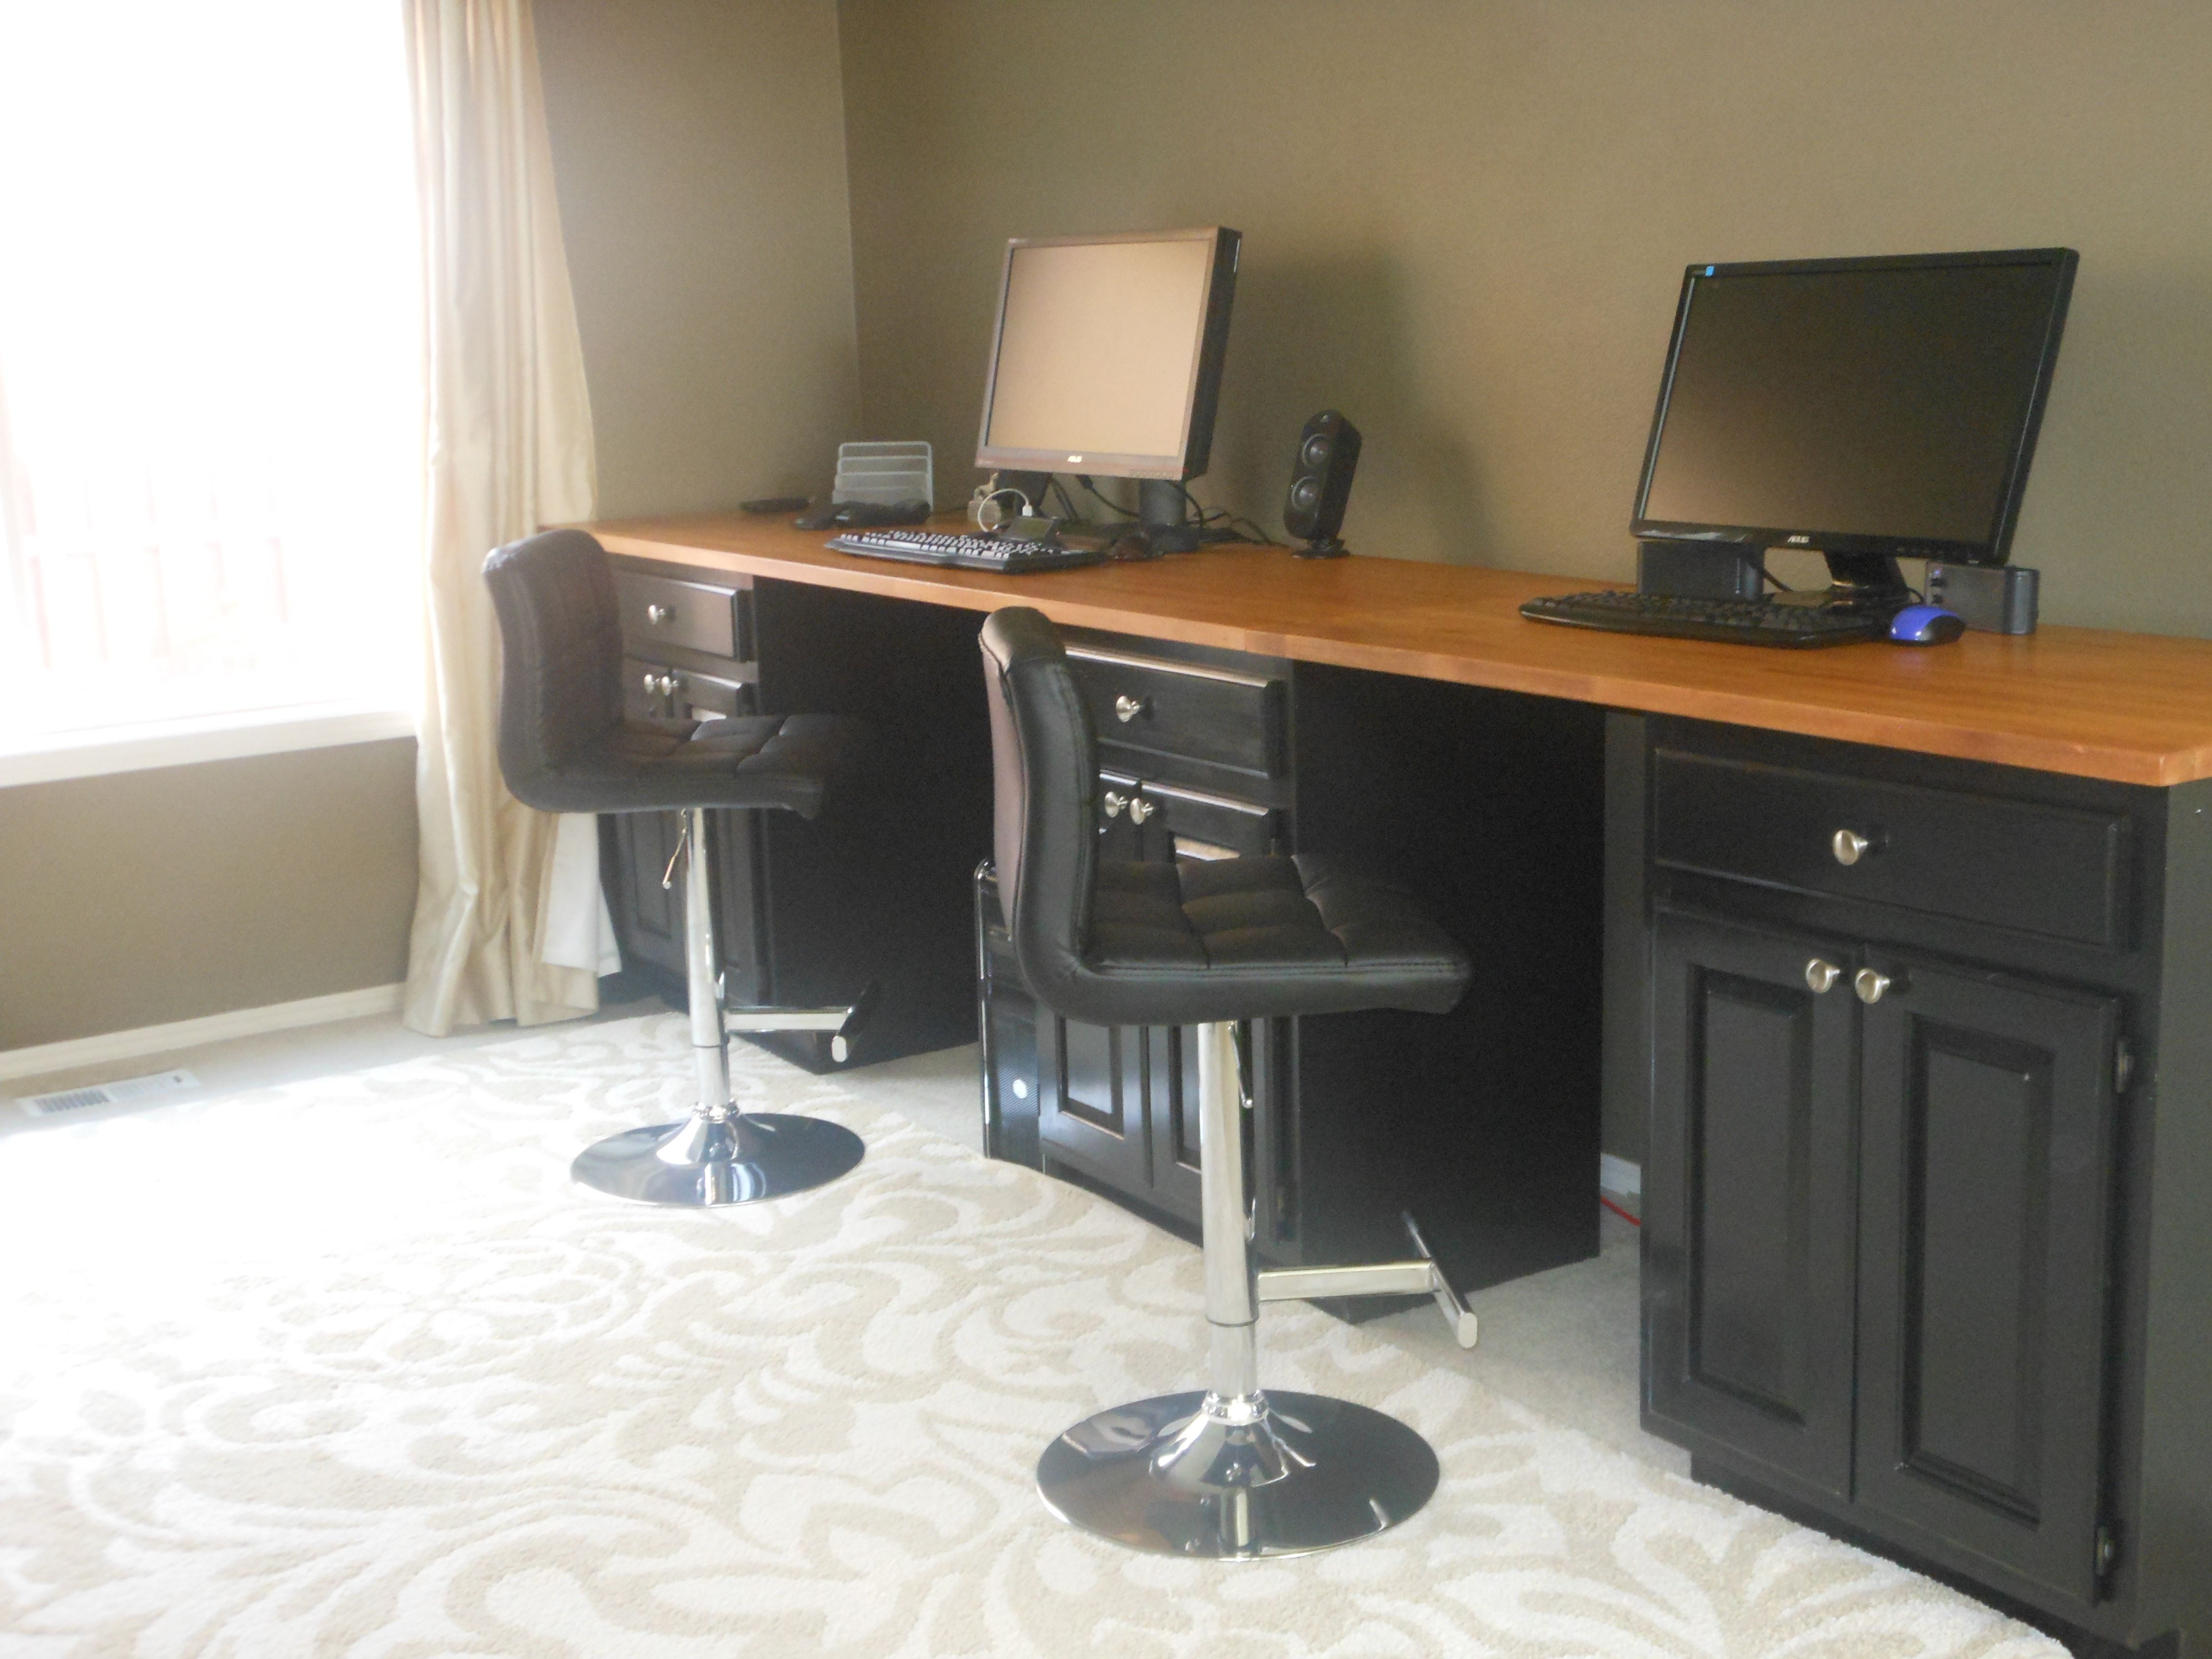 standing computer lab desk made from old painted kitchen cabinets rh pinterest com